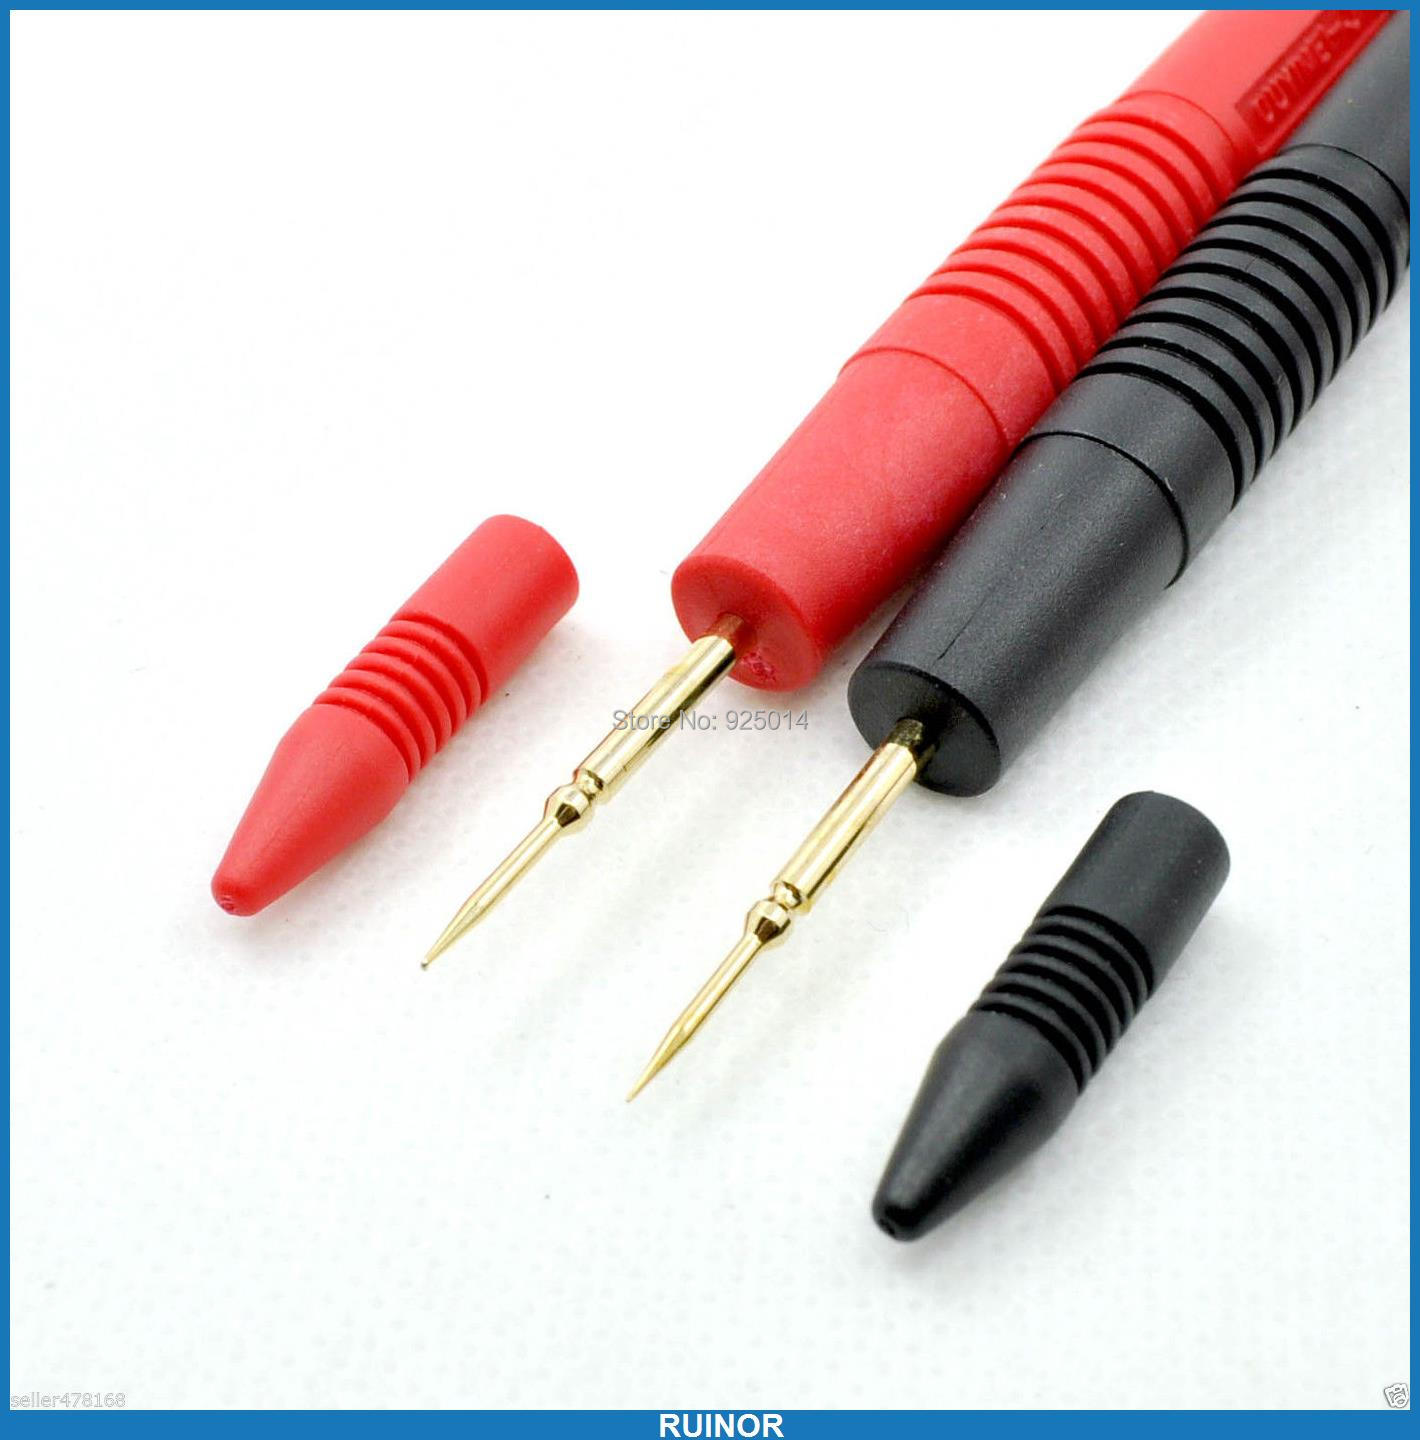 1 pair Needle PCB IC SMT SMD Multimeter pen for Test Probes Cables 4MM BANANA plug areyourshop sale 50pcs 5color 2mm gold banana male plug audio adapters for instrument test probes m